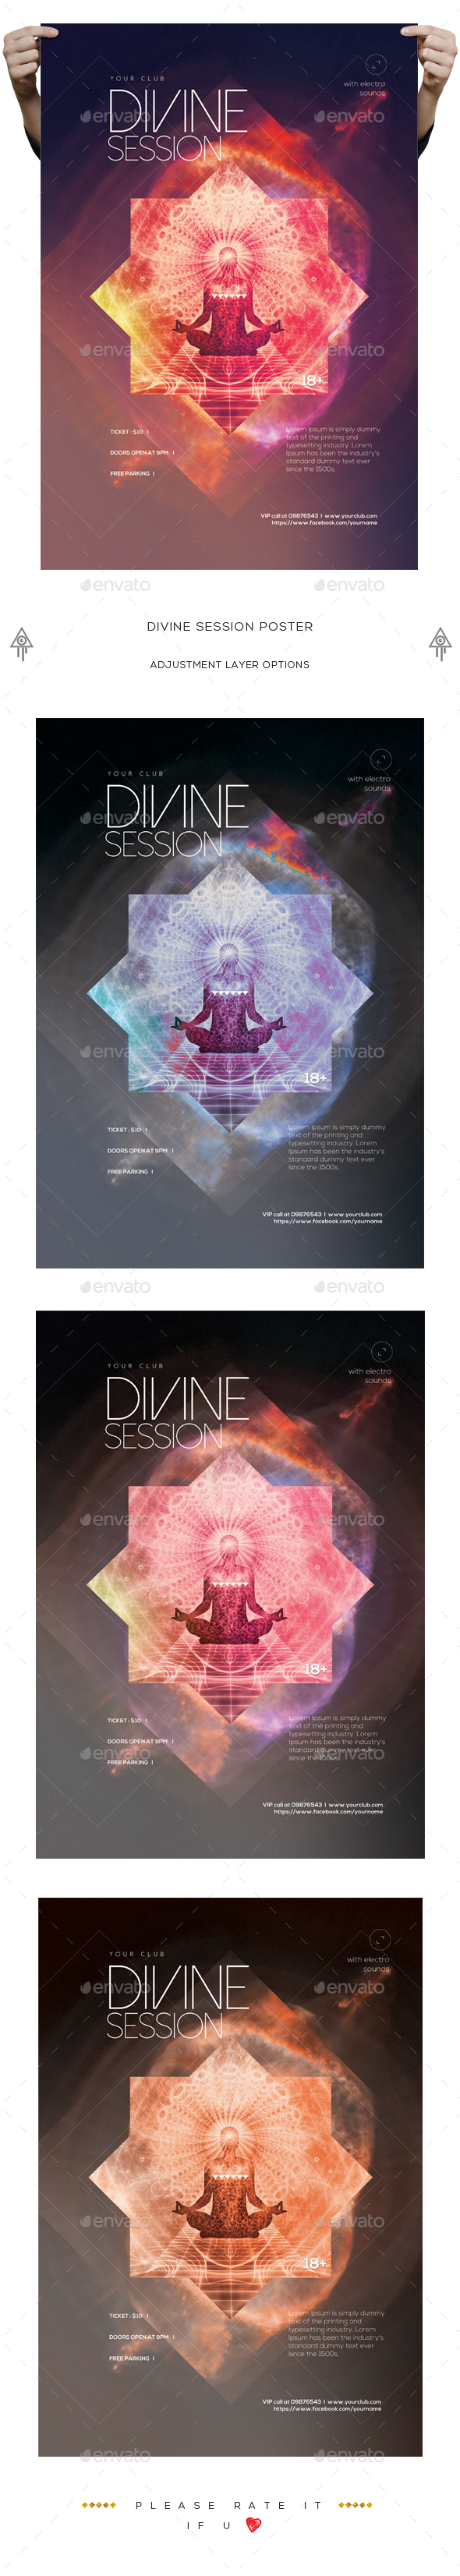 Minimalistic Divine Session Poster - Clubs & Parties Events